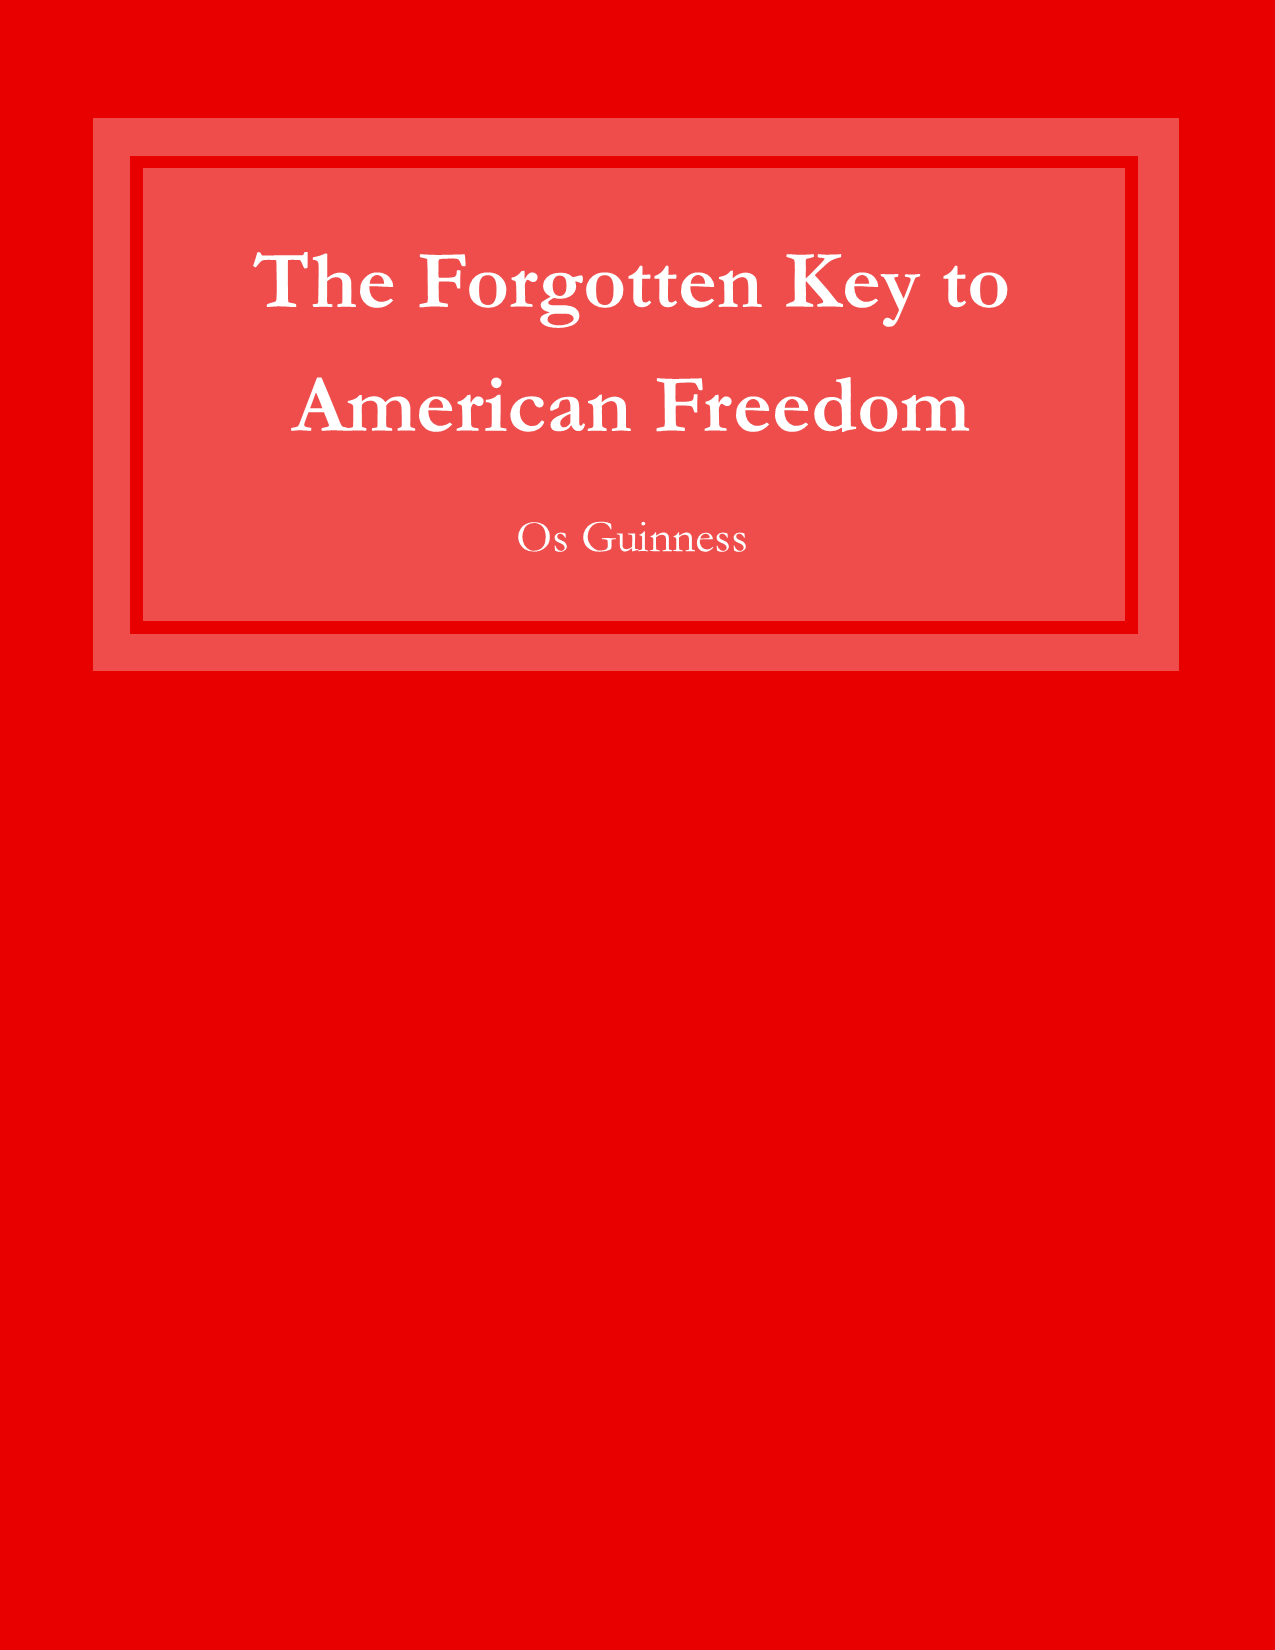 The Forgotten Key to American Freedom